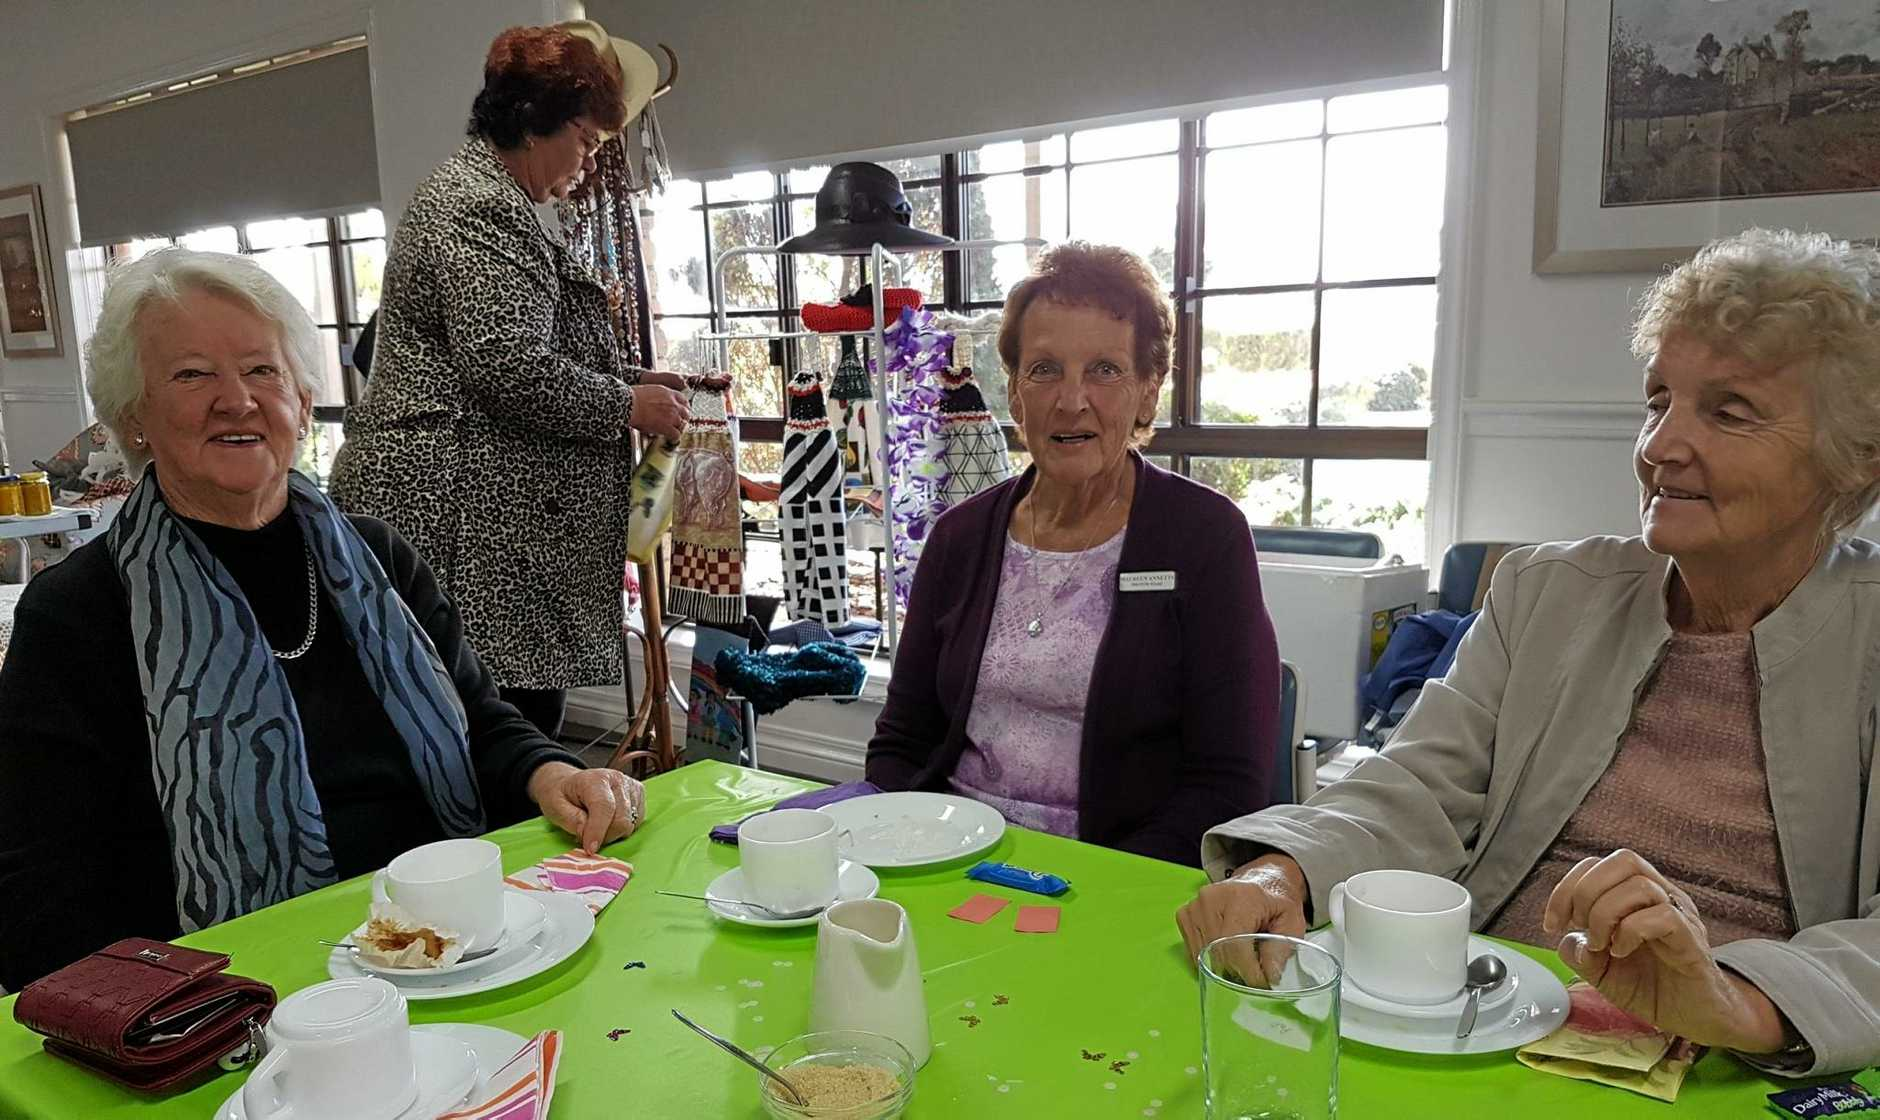 Drayton Villas residents enjoy morning tea and check out the goods at the bring-and-buy fundraiser.